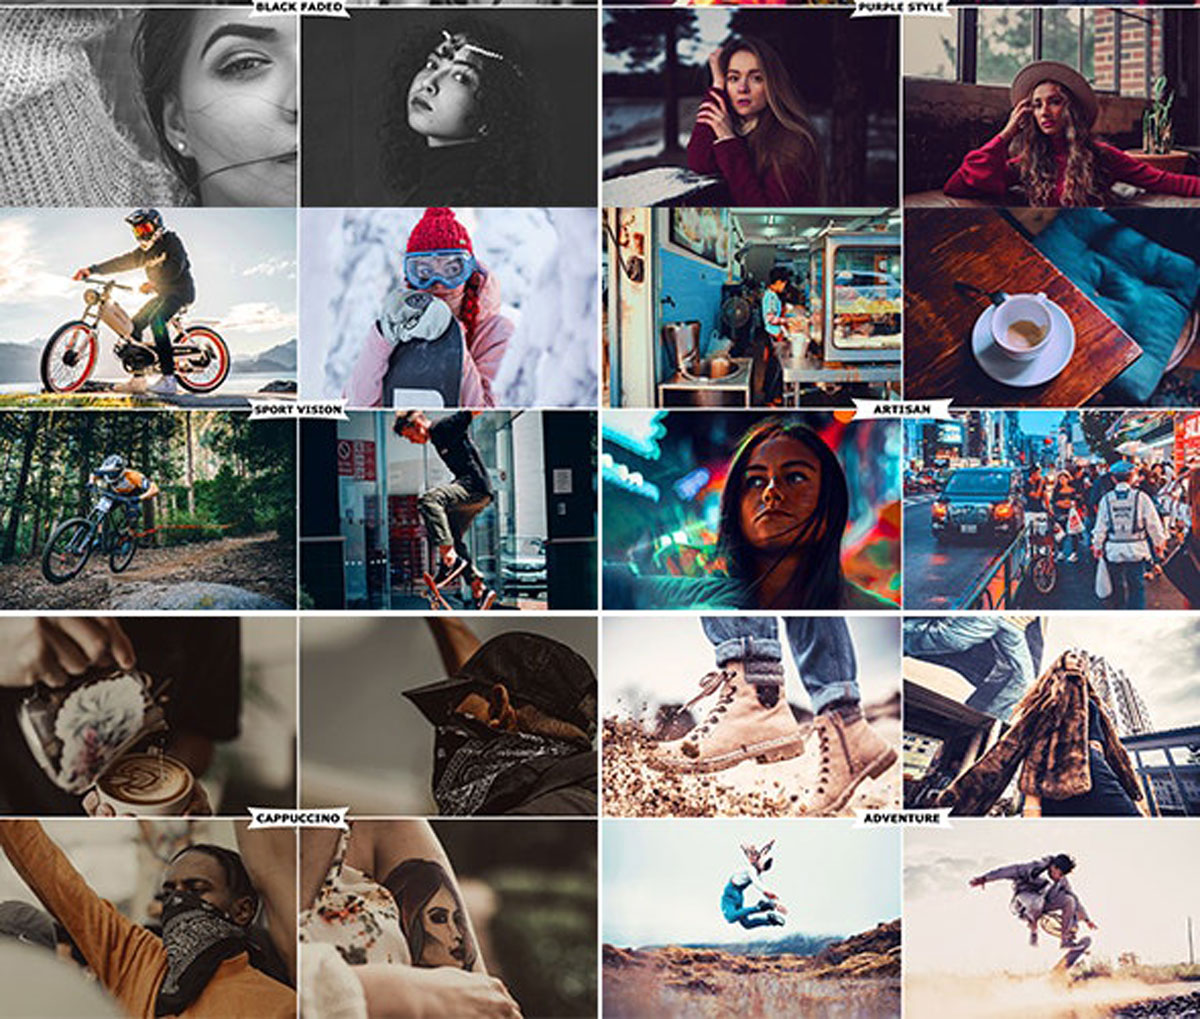 8 IN 1 Photoshop Actions Bundle 27450364 Free